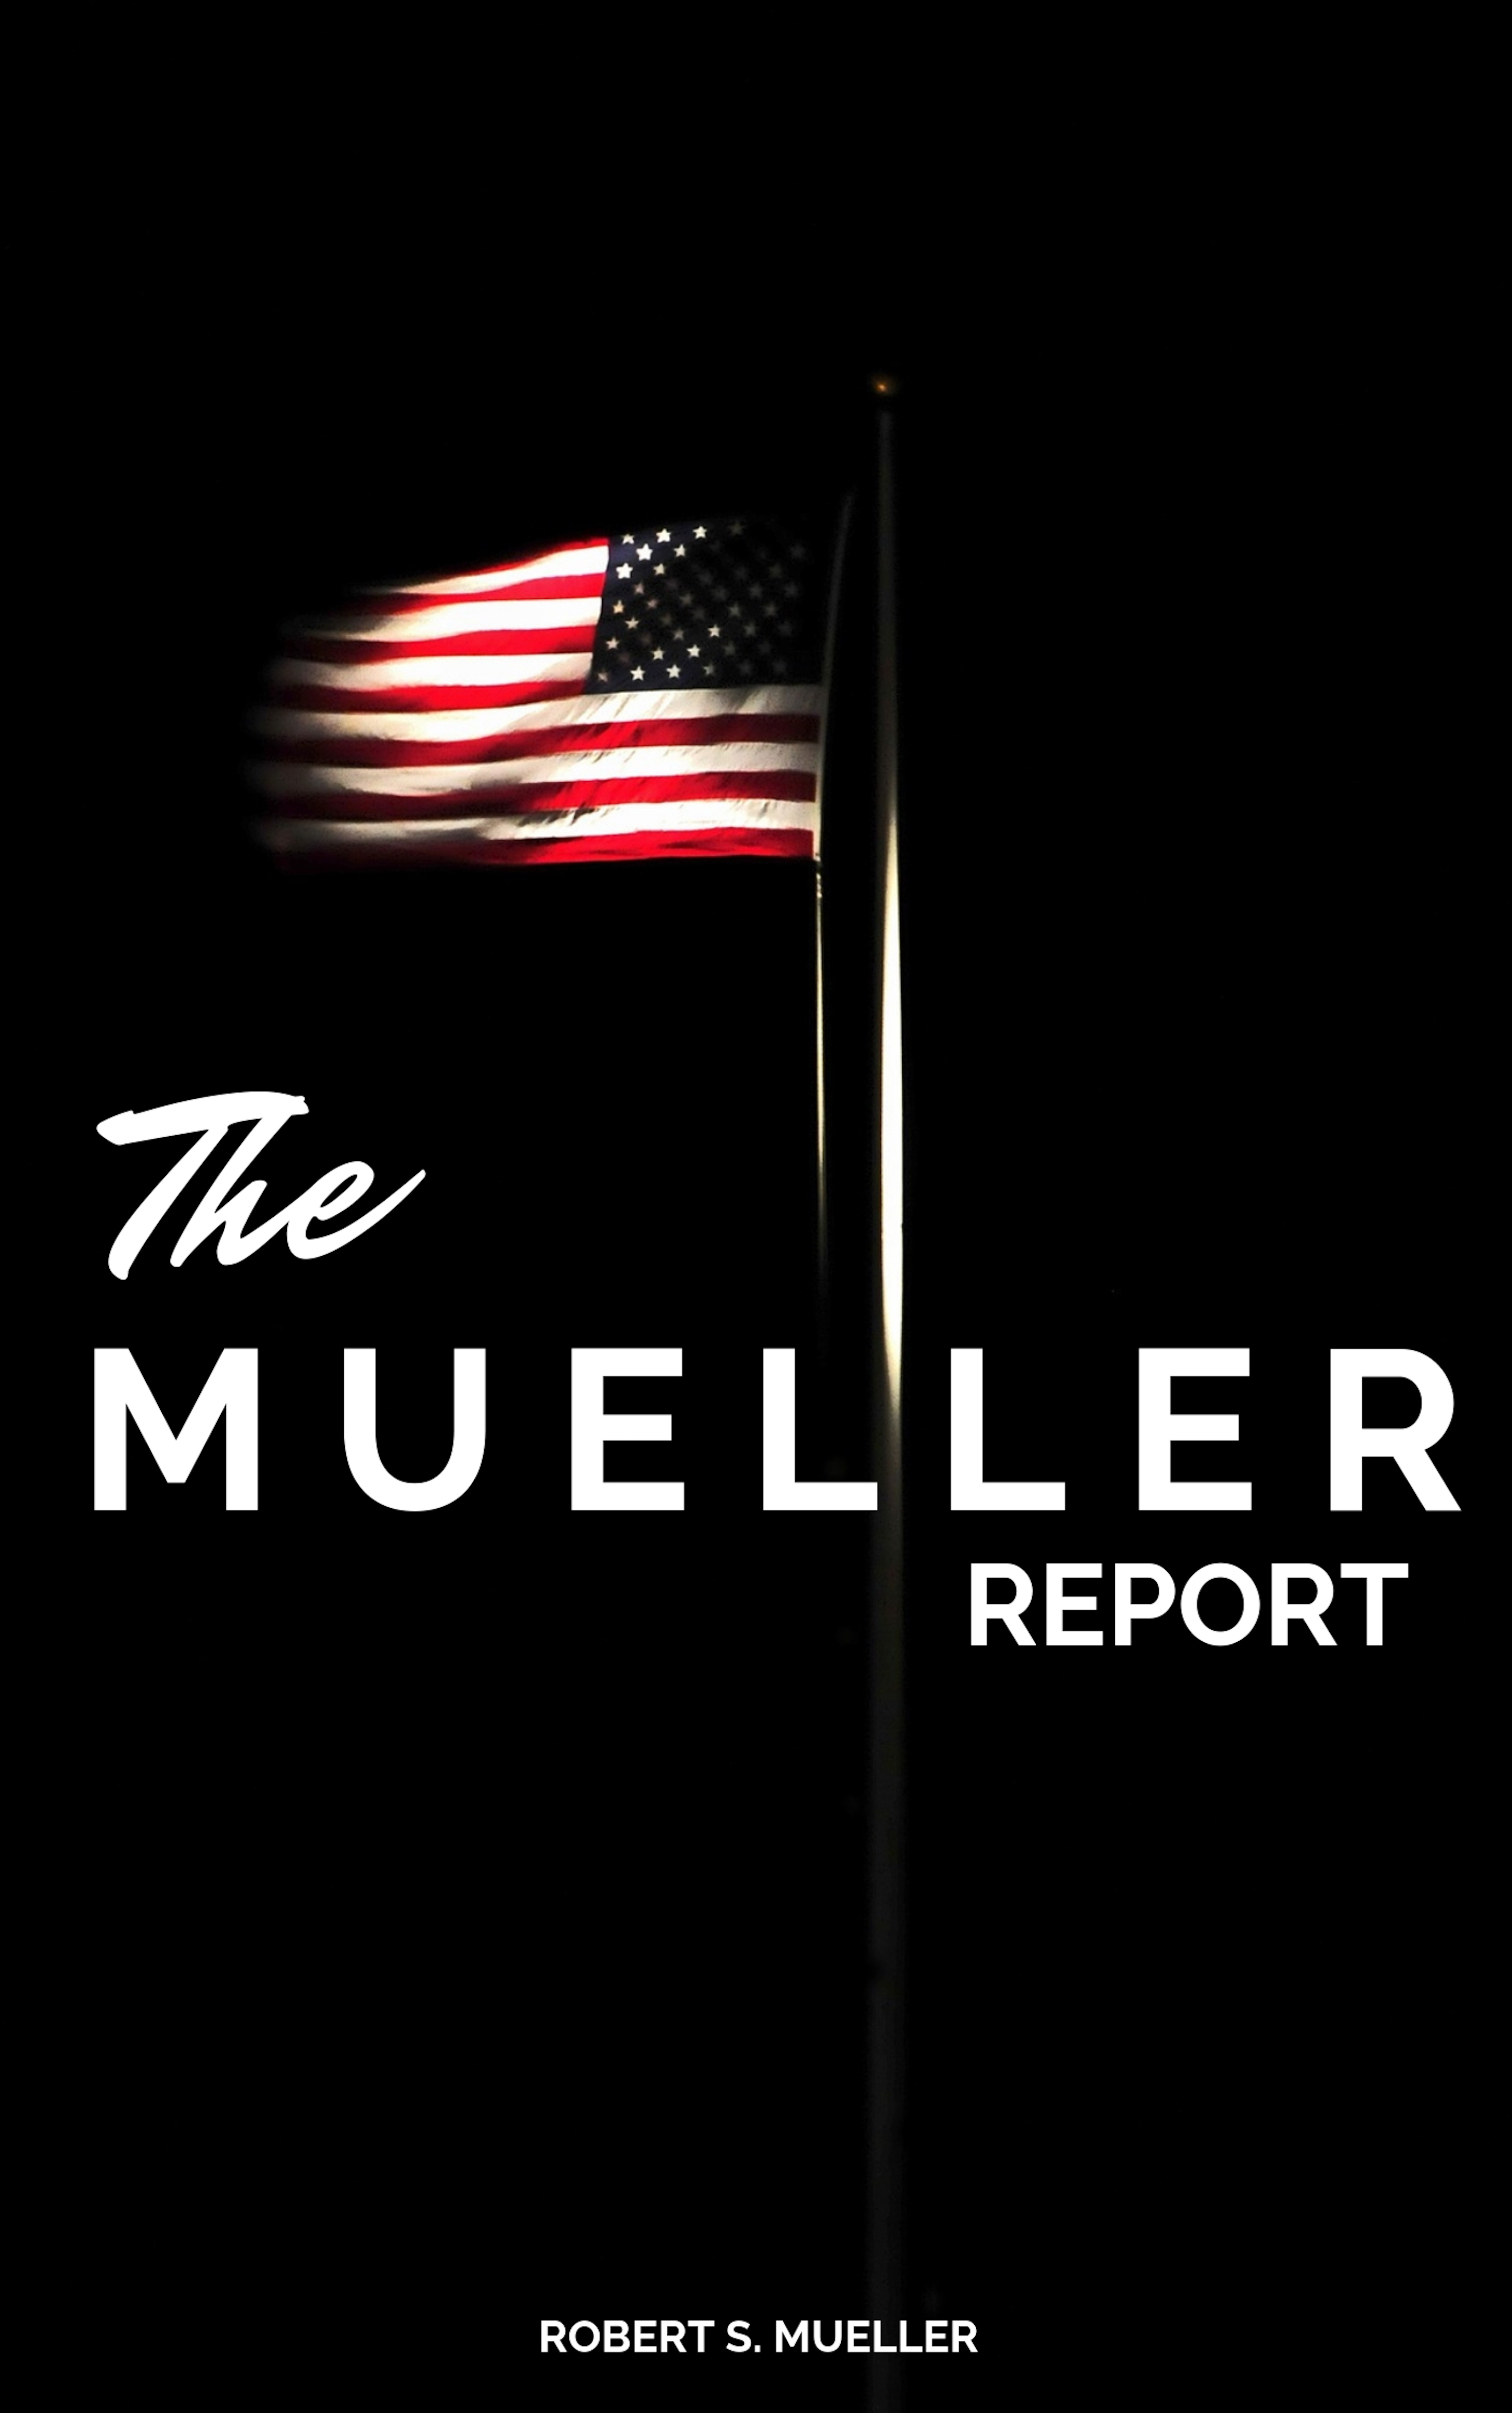 Robert Mueller The Mueller Report: The Full Report on Donald Trump, Collusion, and Russian Interference in the Presidential Election